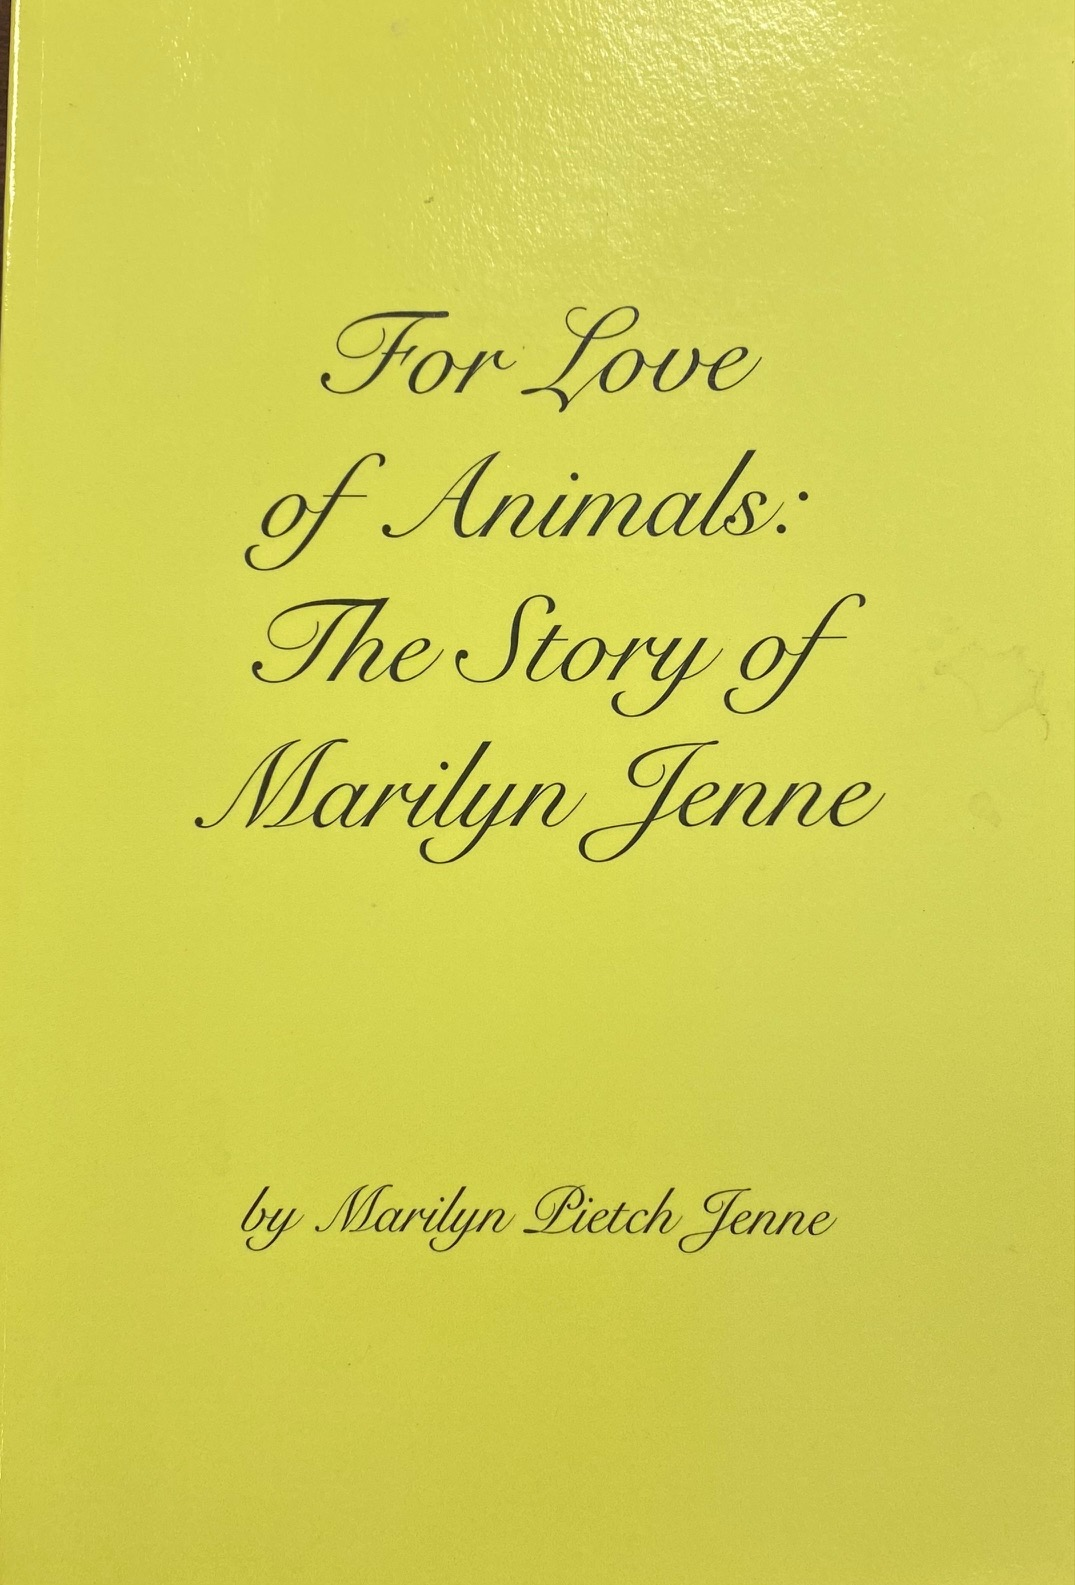 Image for For Love of Animals: The Story of Marilyn Jenne